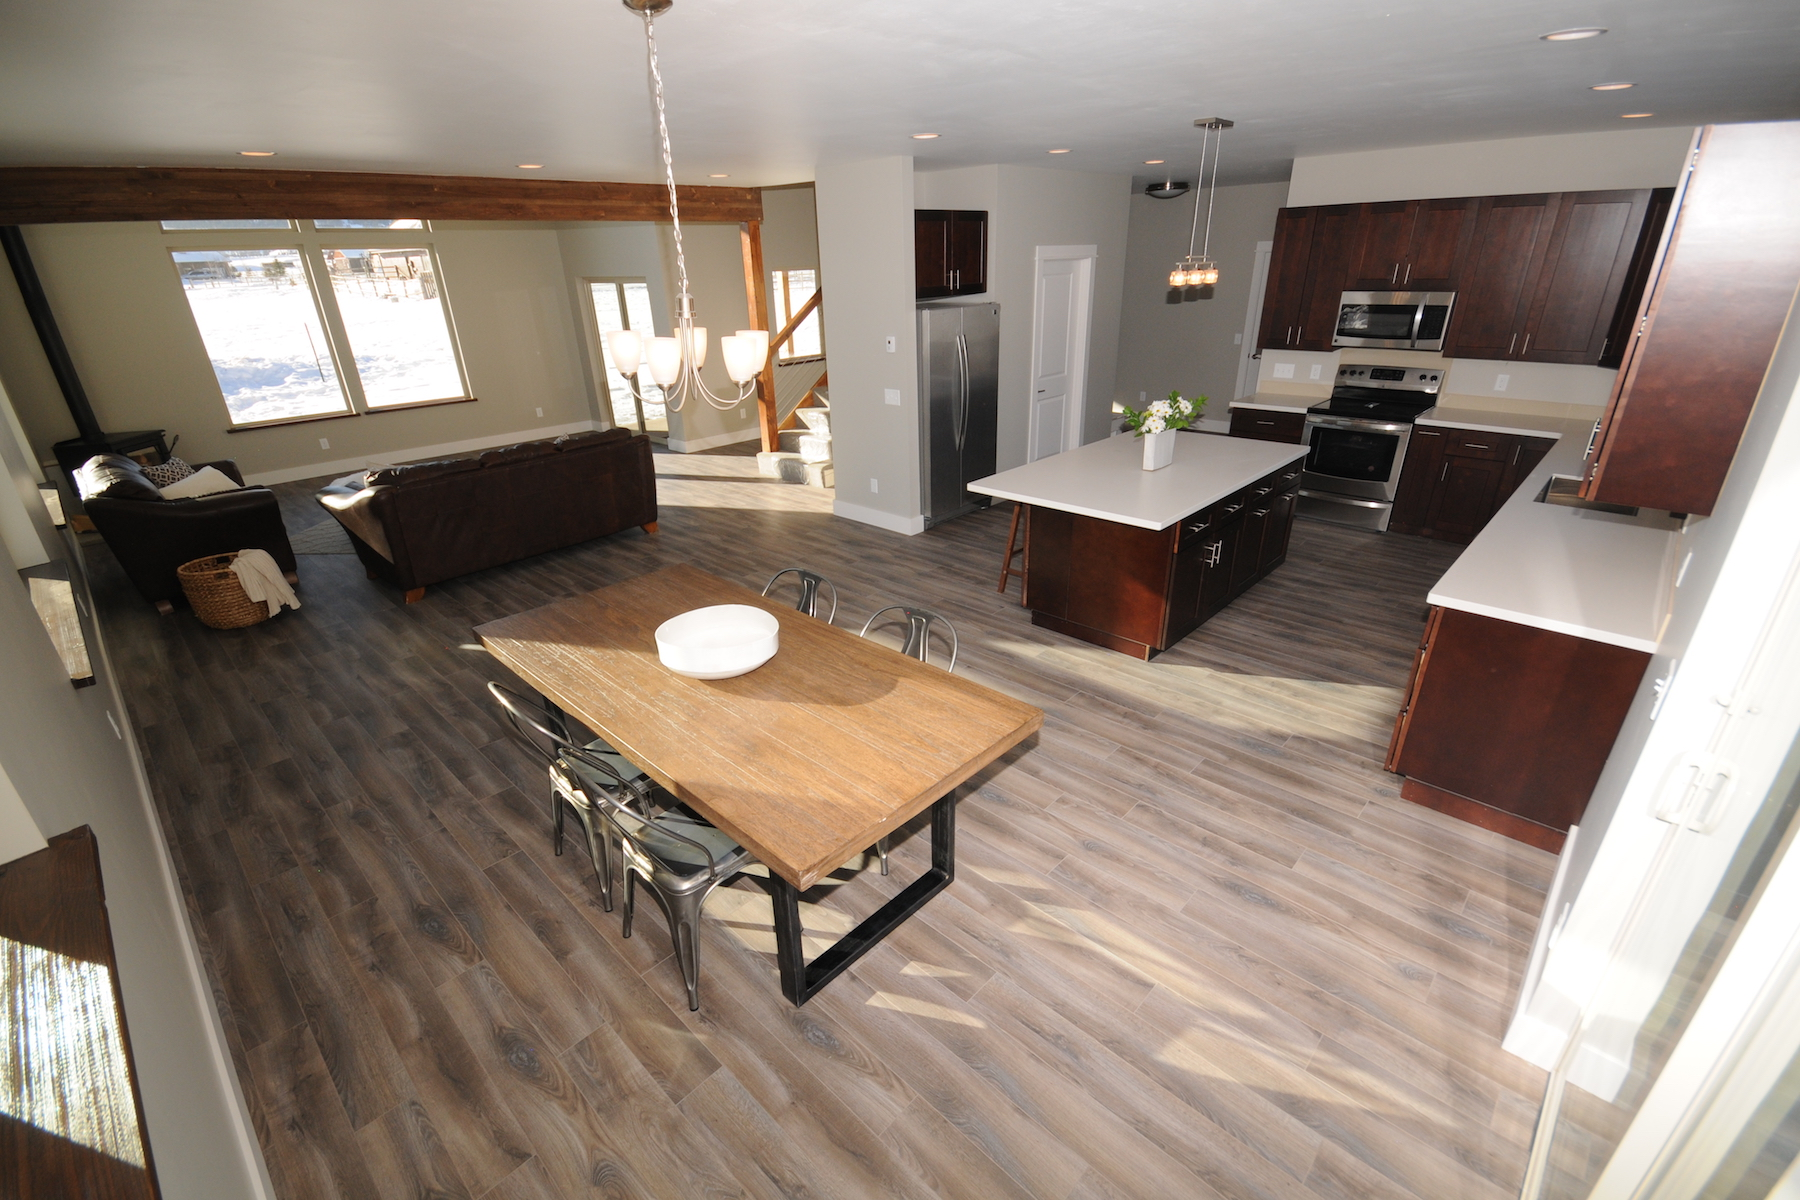 Property Of Big Sky's Ramshorn Custom Home - To Be Built